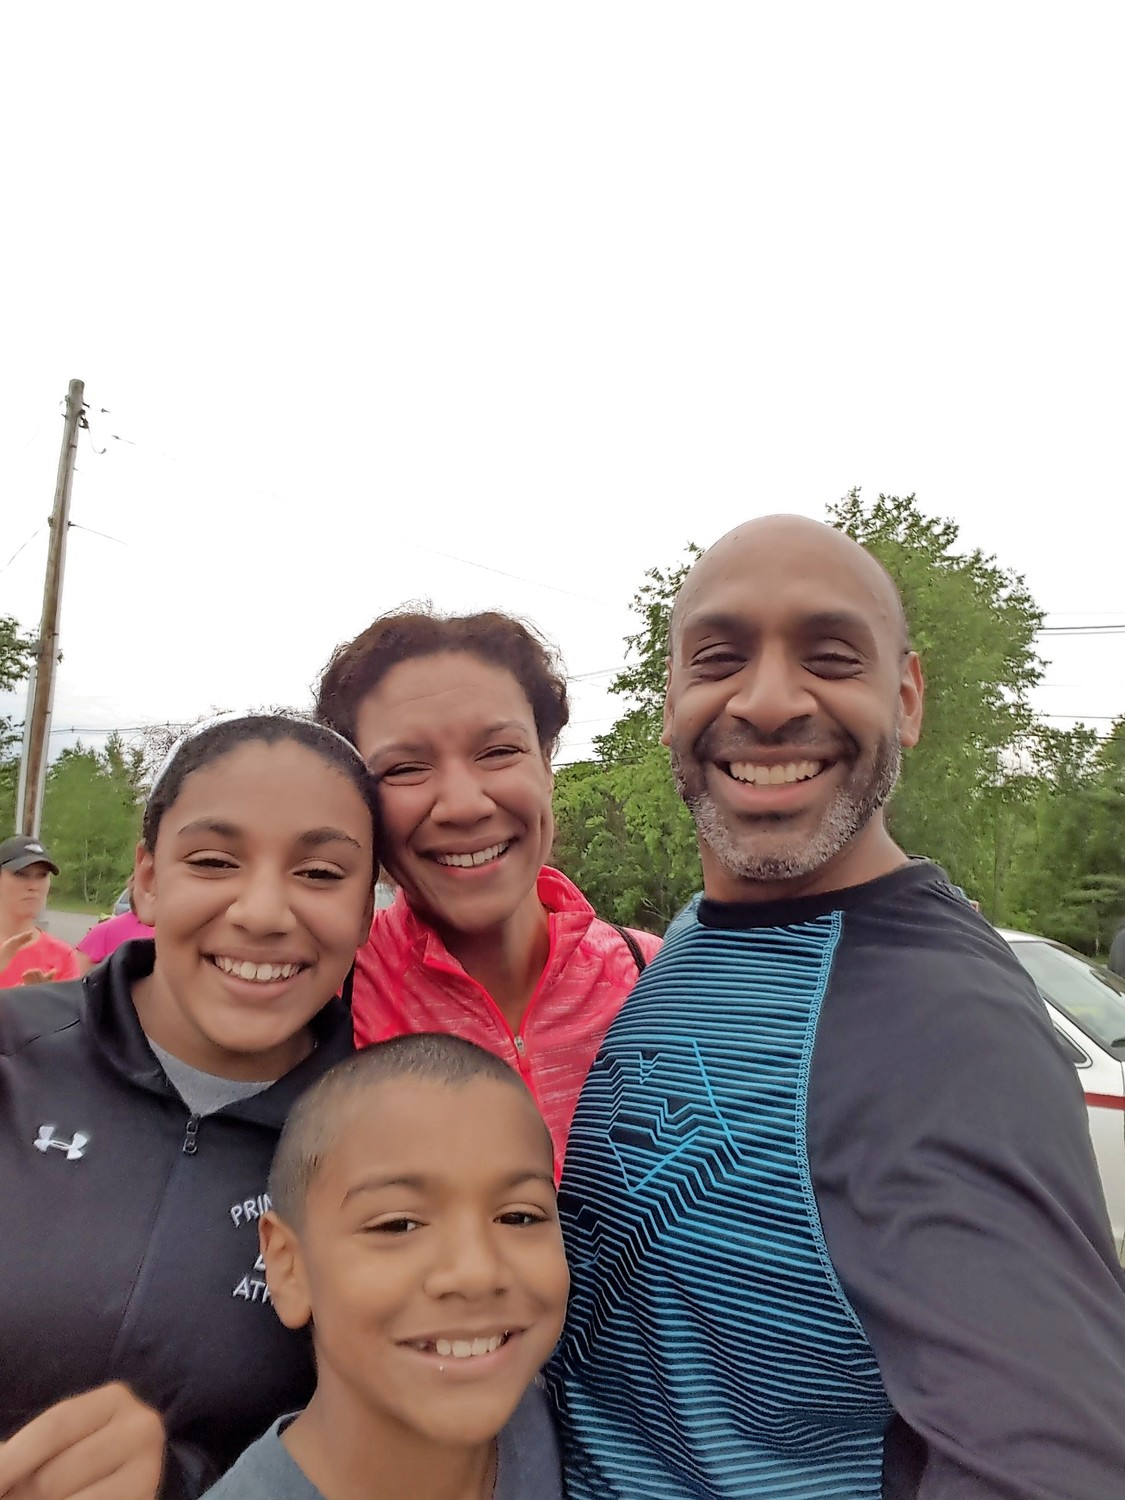 Nigel Furlonge partakes in a 5K race with his family. Furlonge will start as the new principal of Fieldston Upper School in the fall.